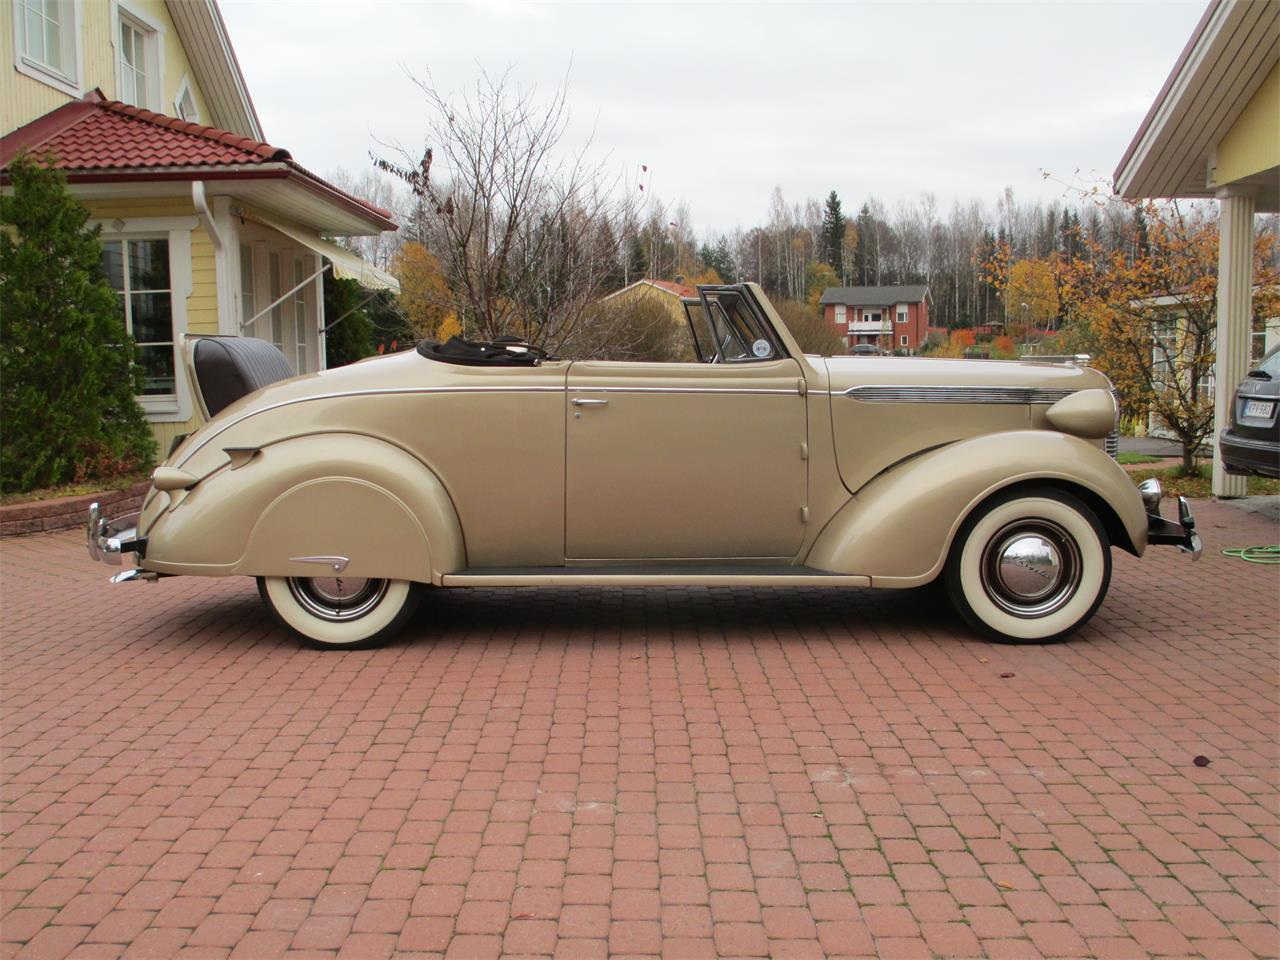 1937 Chrysler Royal for sale in Helsinki, Vantaa – photo 2